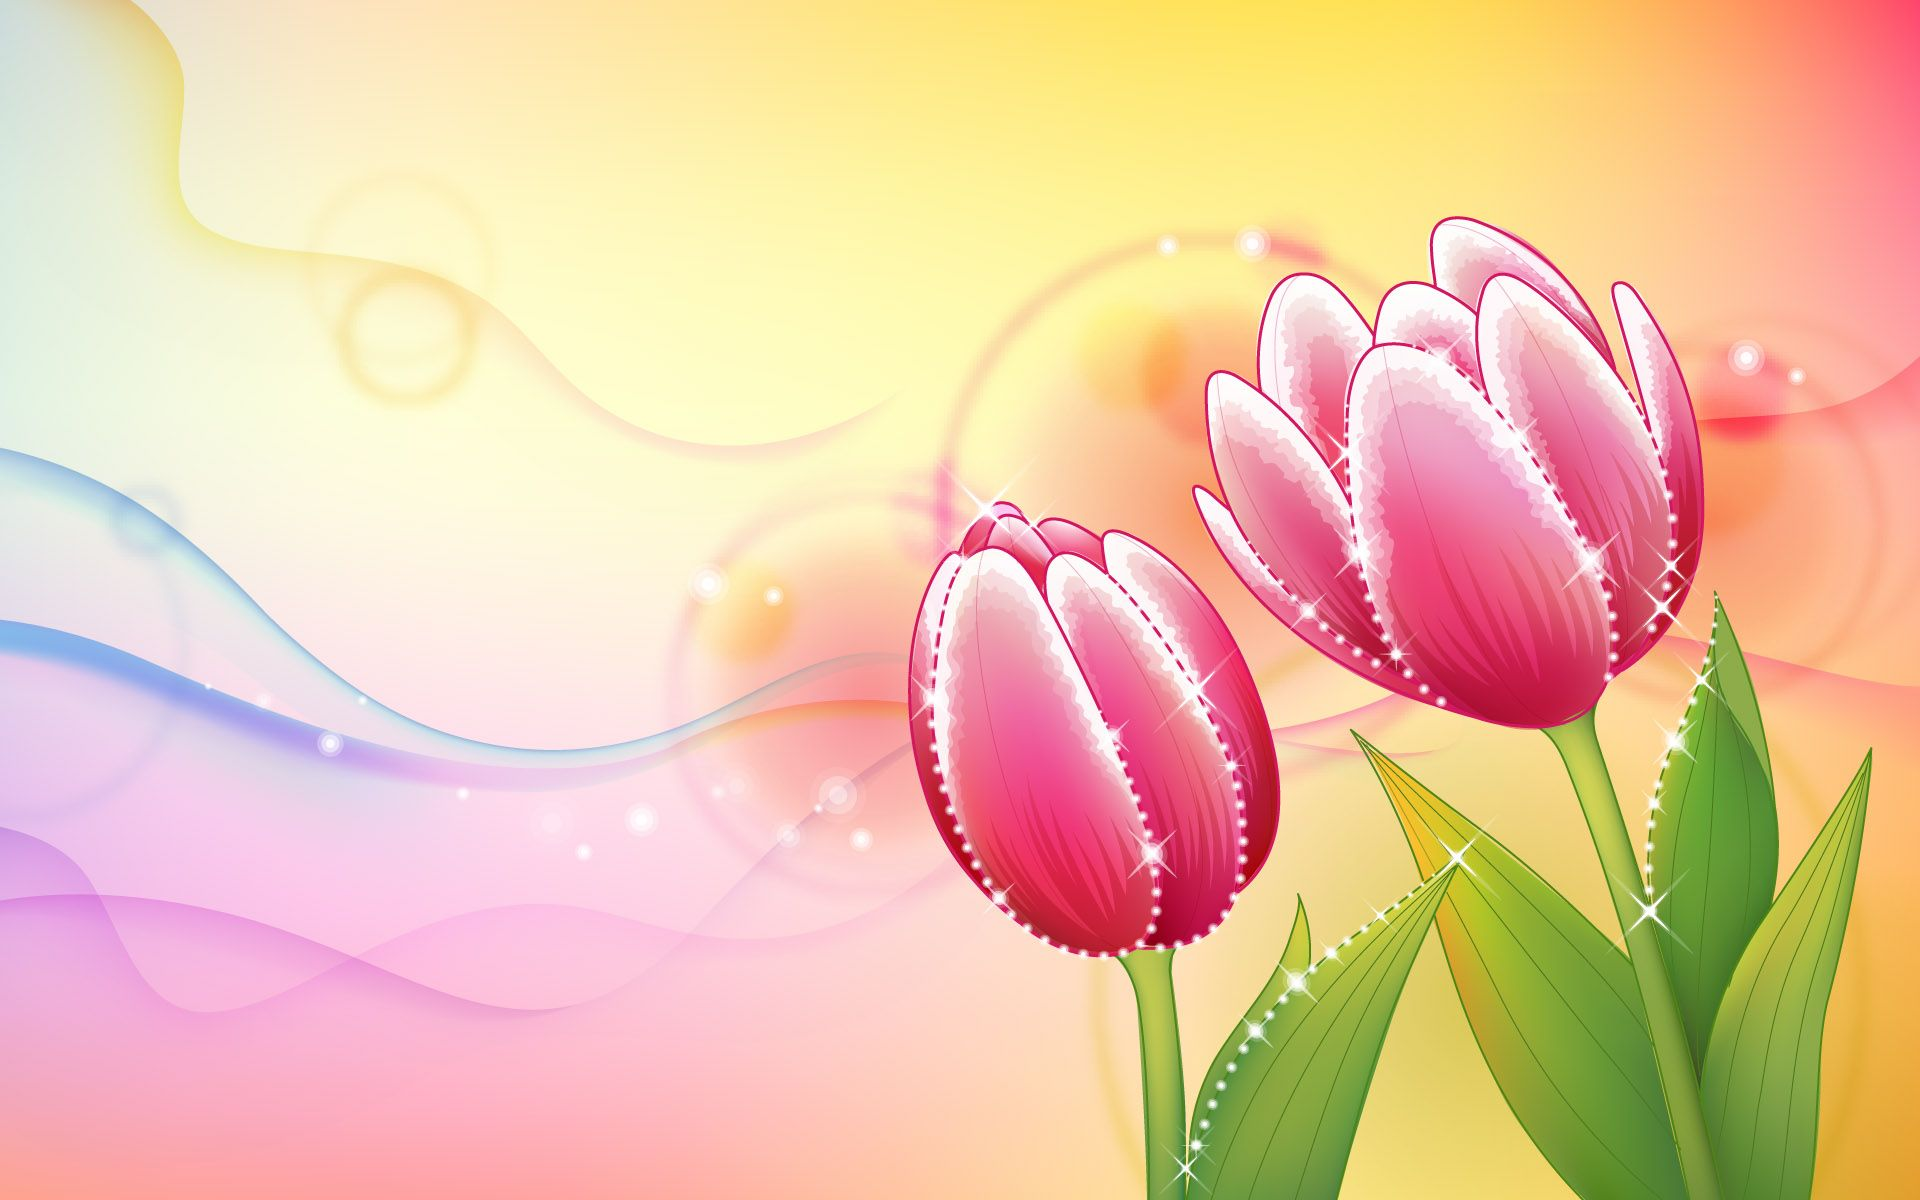 Abstract flowers vector wallpaper 2330 wallpaper hdwalldownloads 80 abstract flowers design wallpapers hd photo 70 of 80 thecheapjerseys